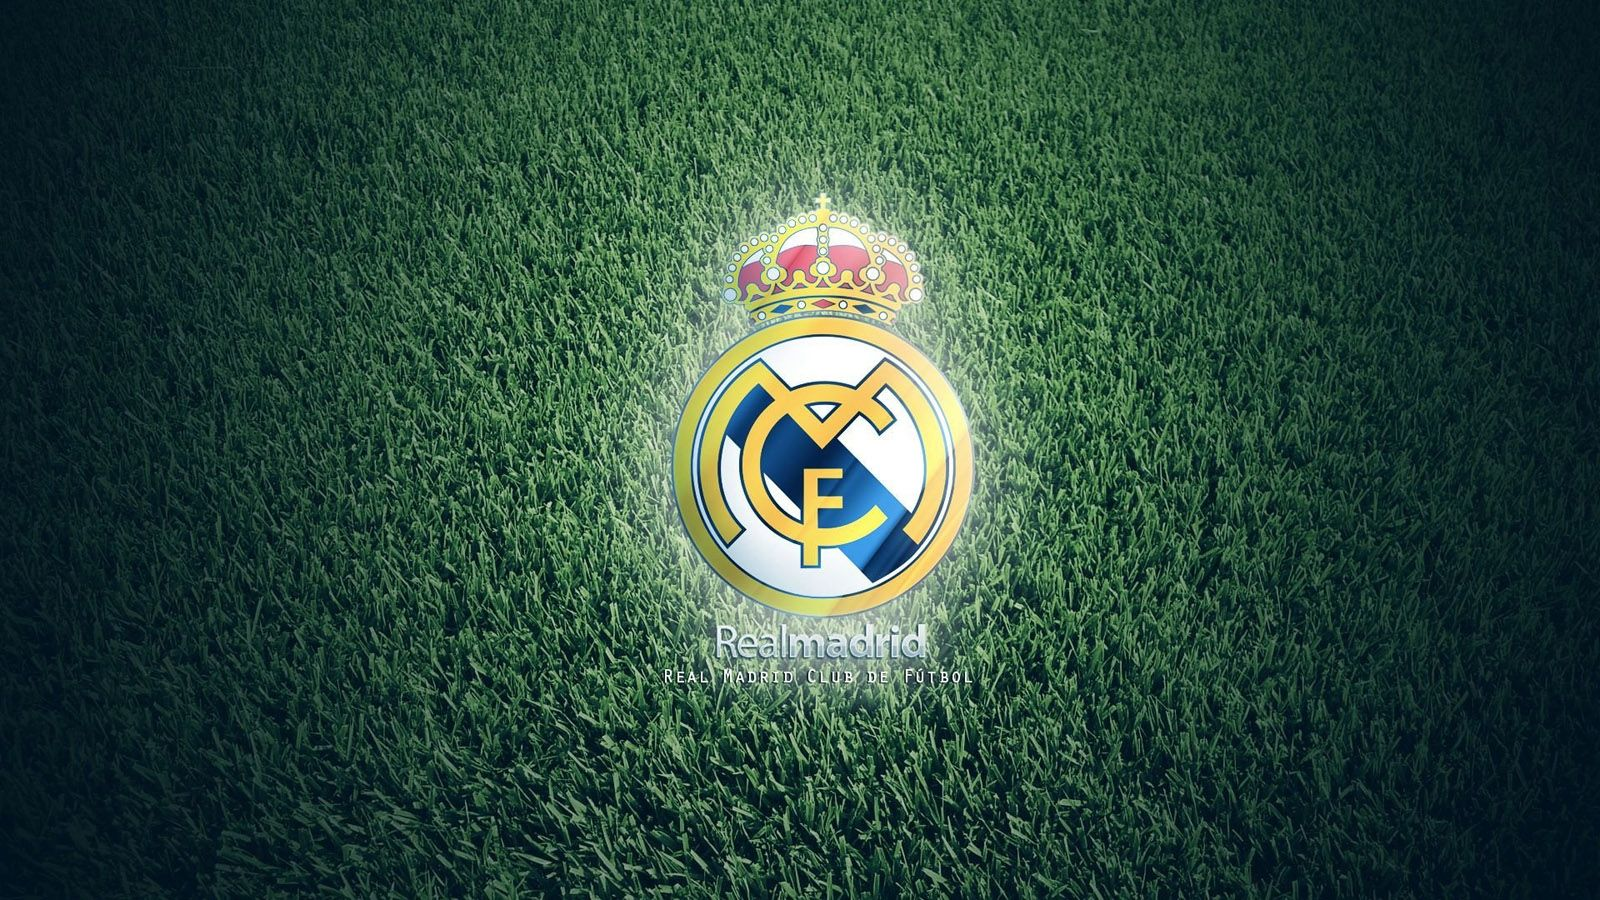 Wallpaper real madrid for windows xp - Cool Real Madrid Hd Cool Wallpaper Free Download